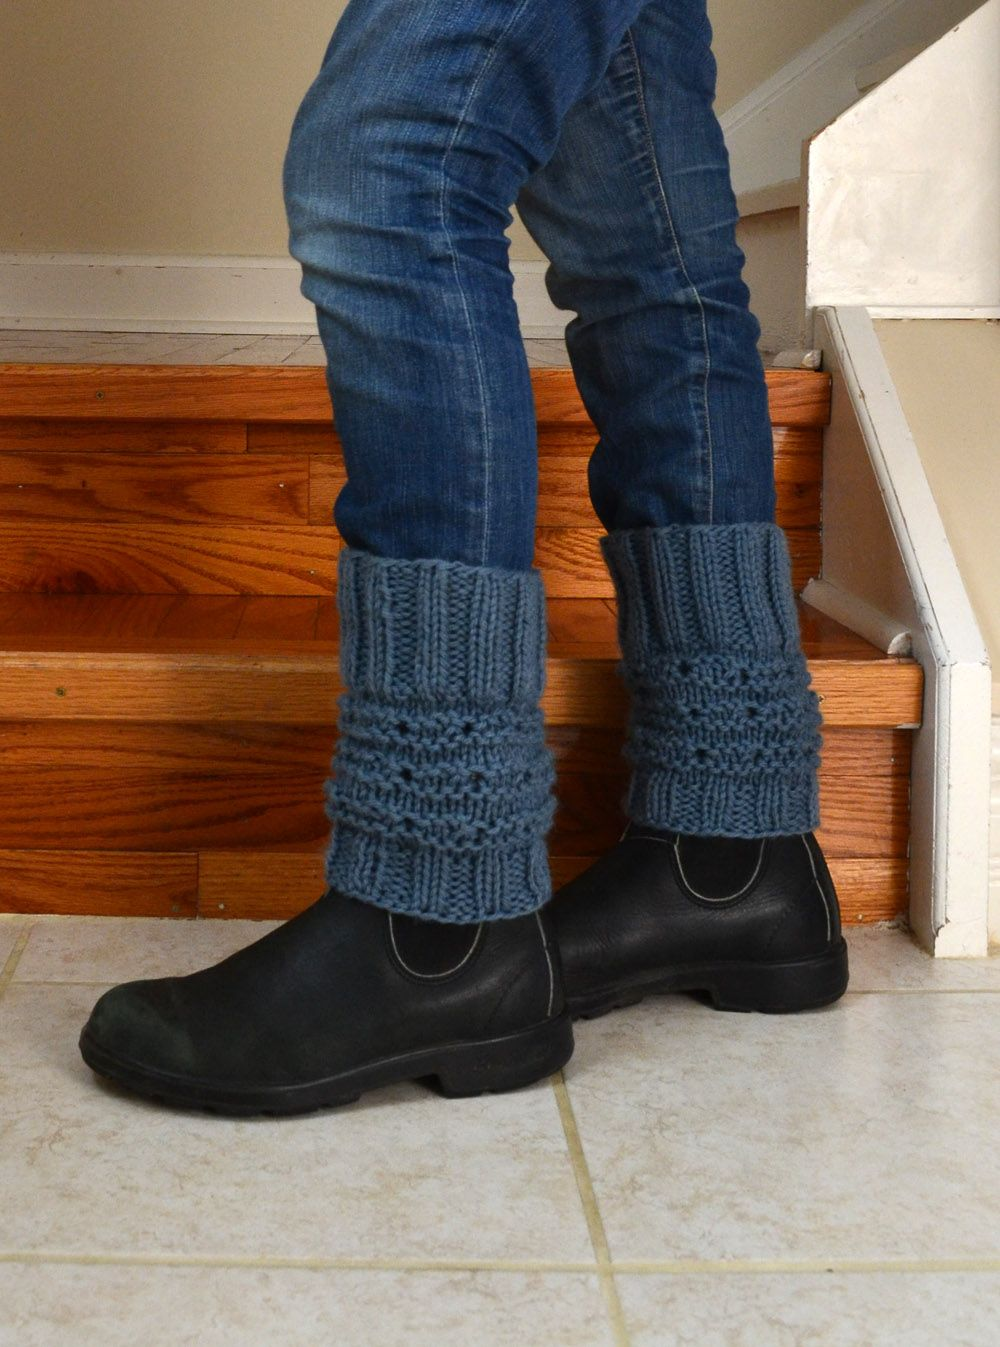 Fine Knitting Pattern For Boot Toppers Vignette - Sewing Pattern for ...